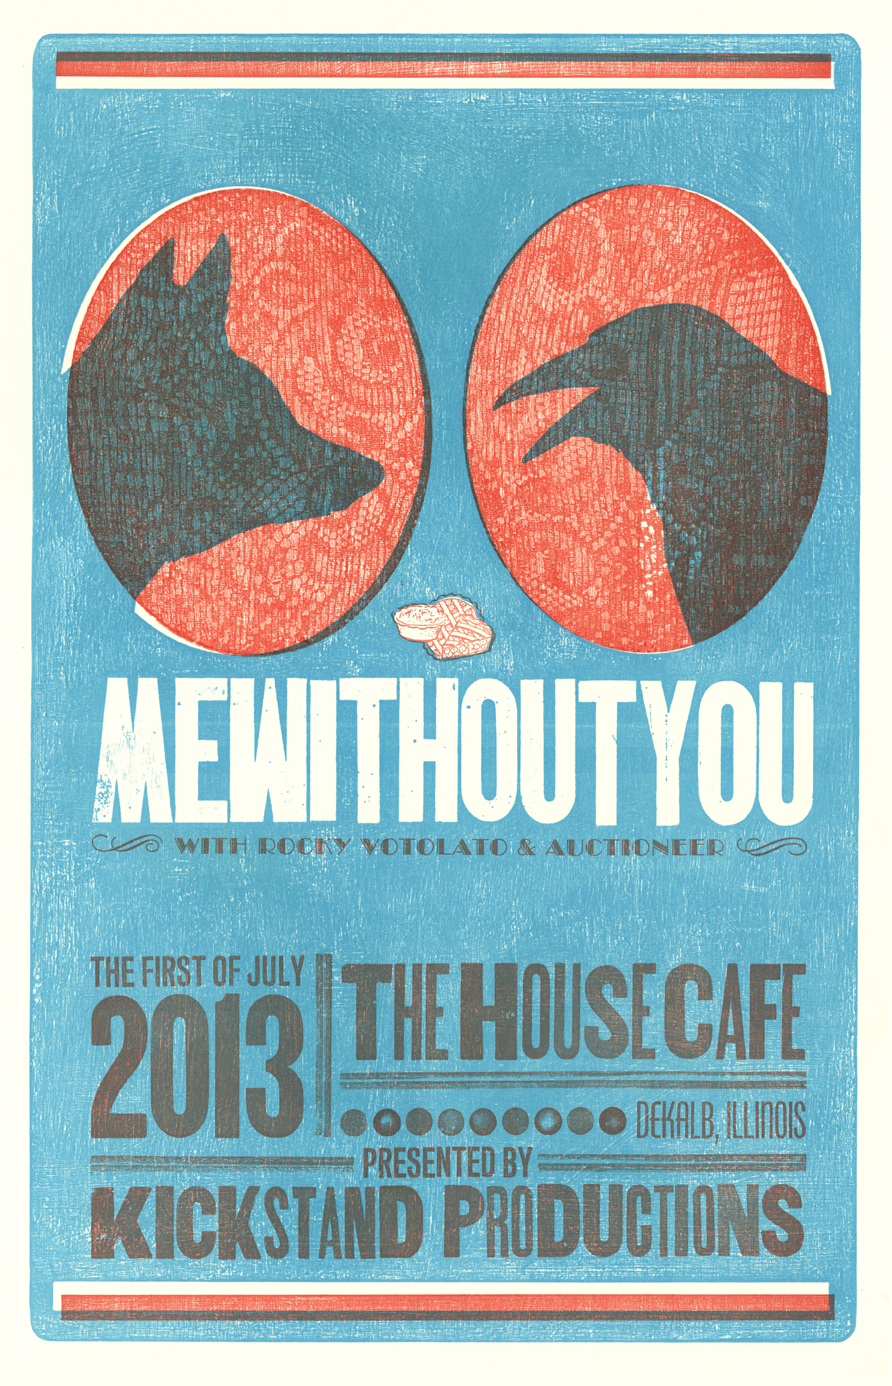 MEWITHOUTYOU, 2-color letterpress show poster, 2013